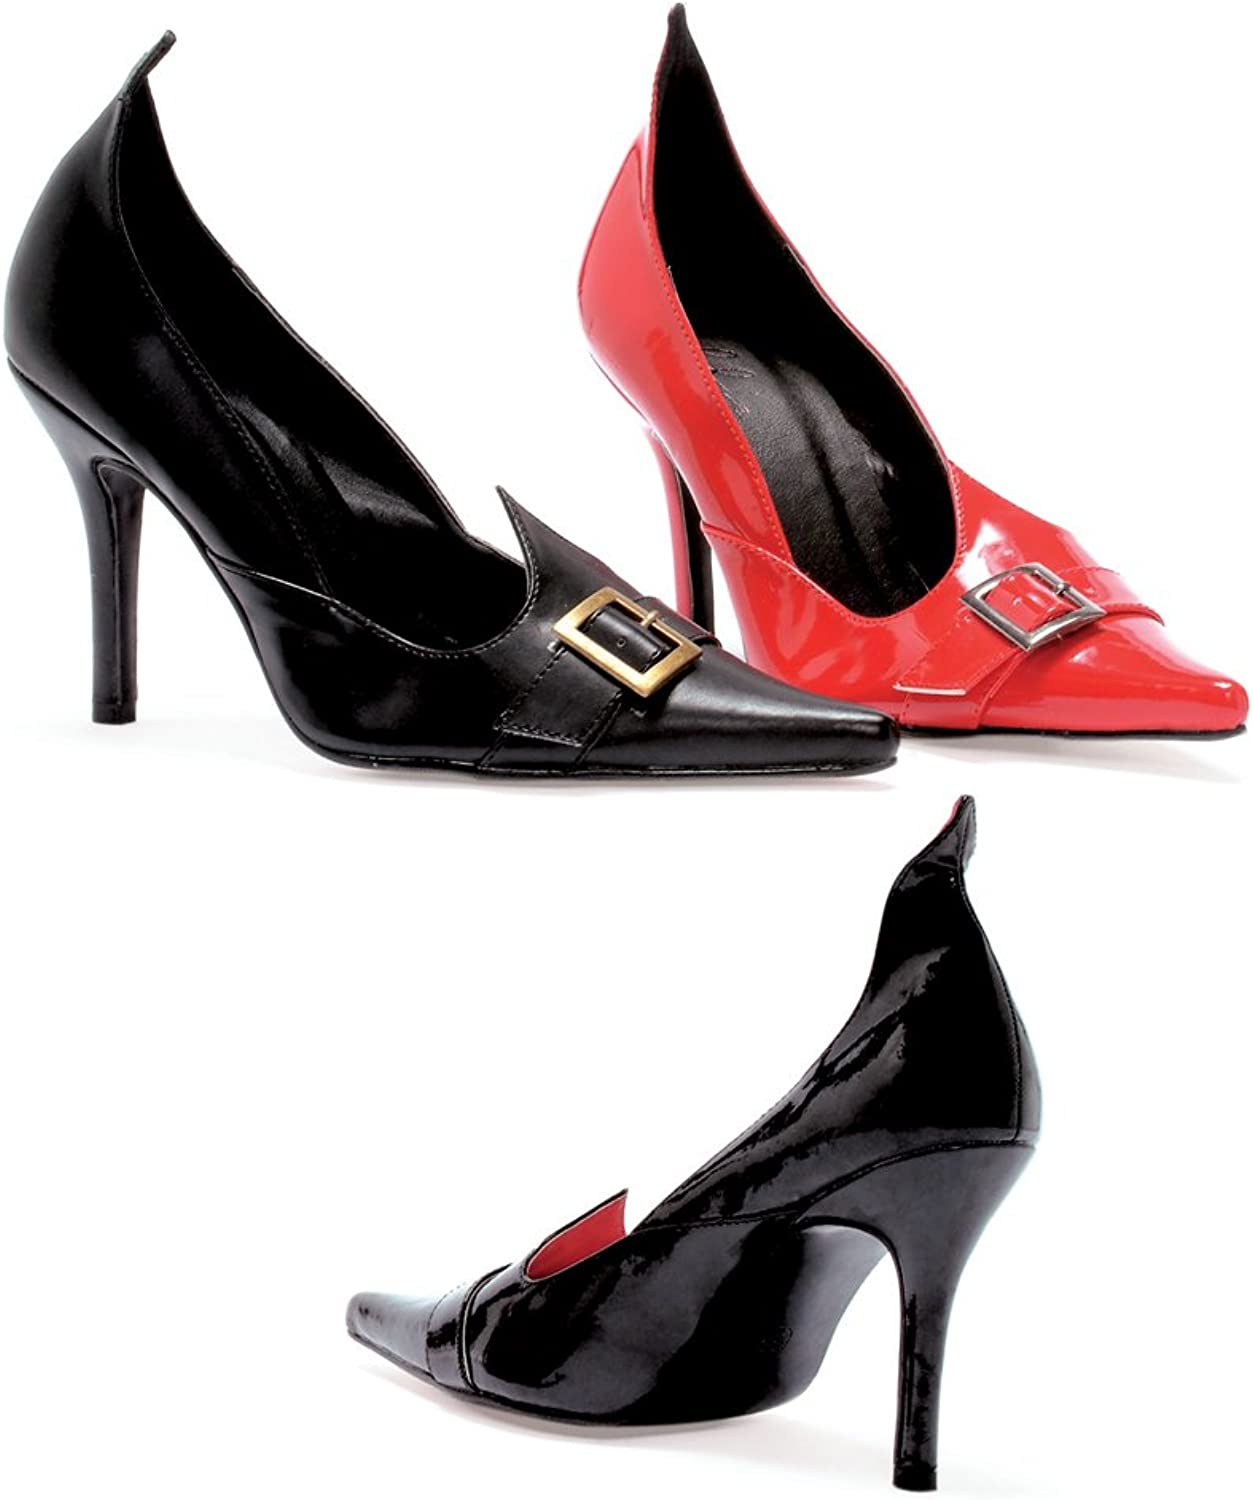 Witchy Costume shoes - Size 12